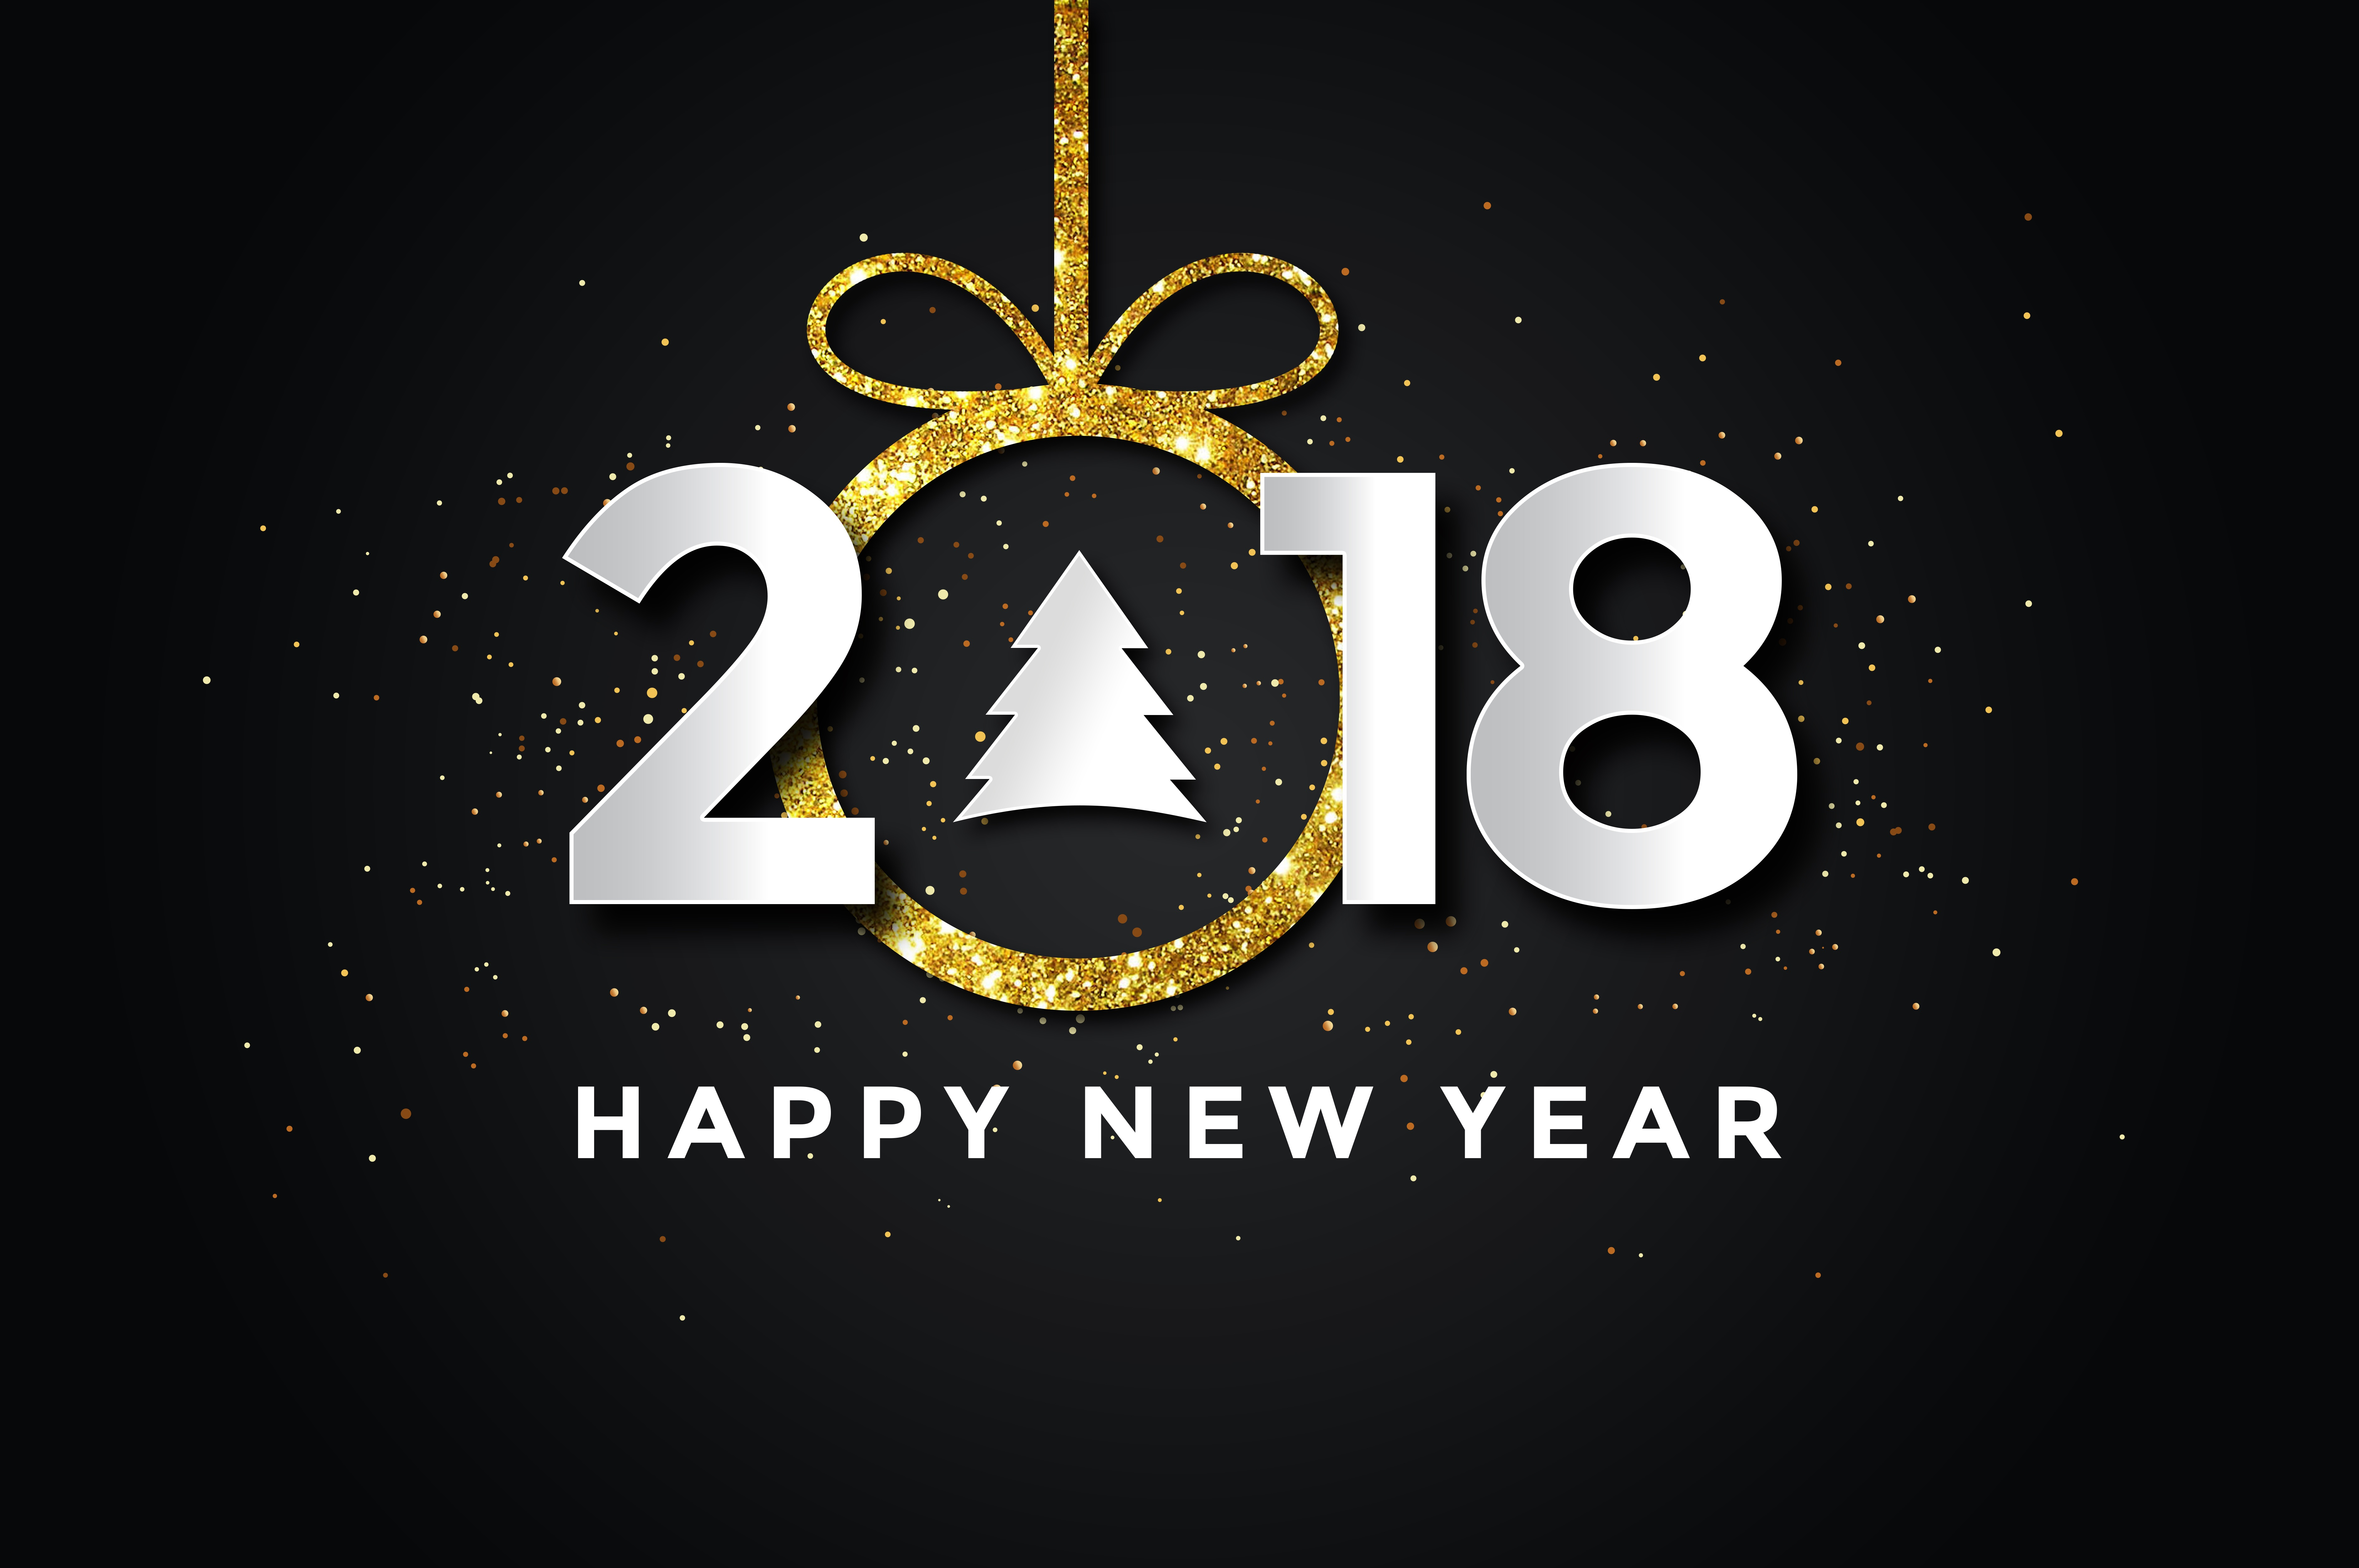 holydays new year new year 2018 hd wallpaper background image id891036